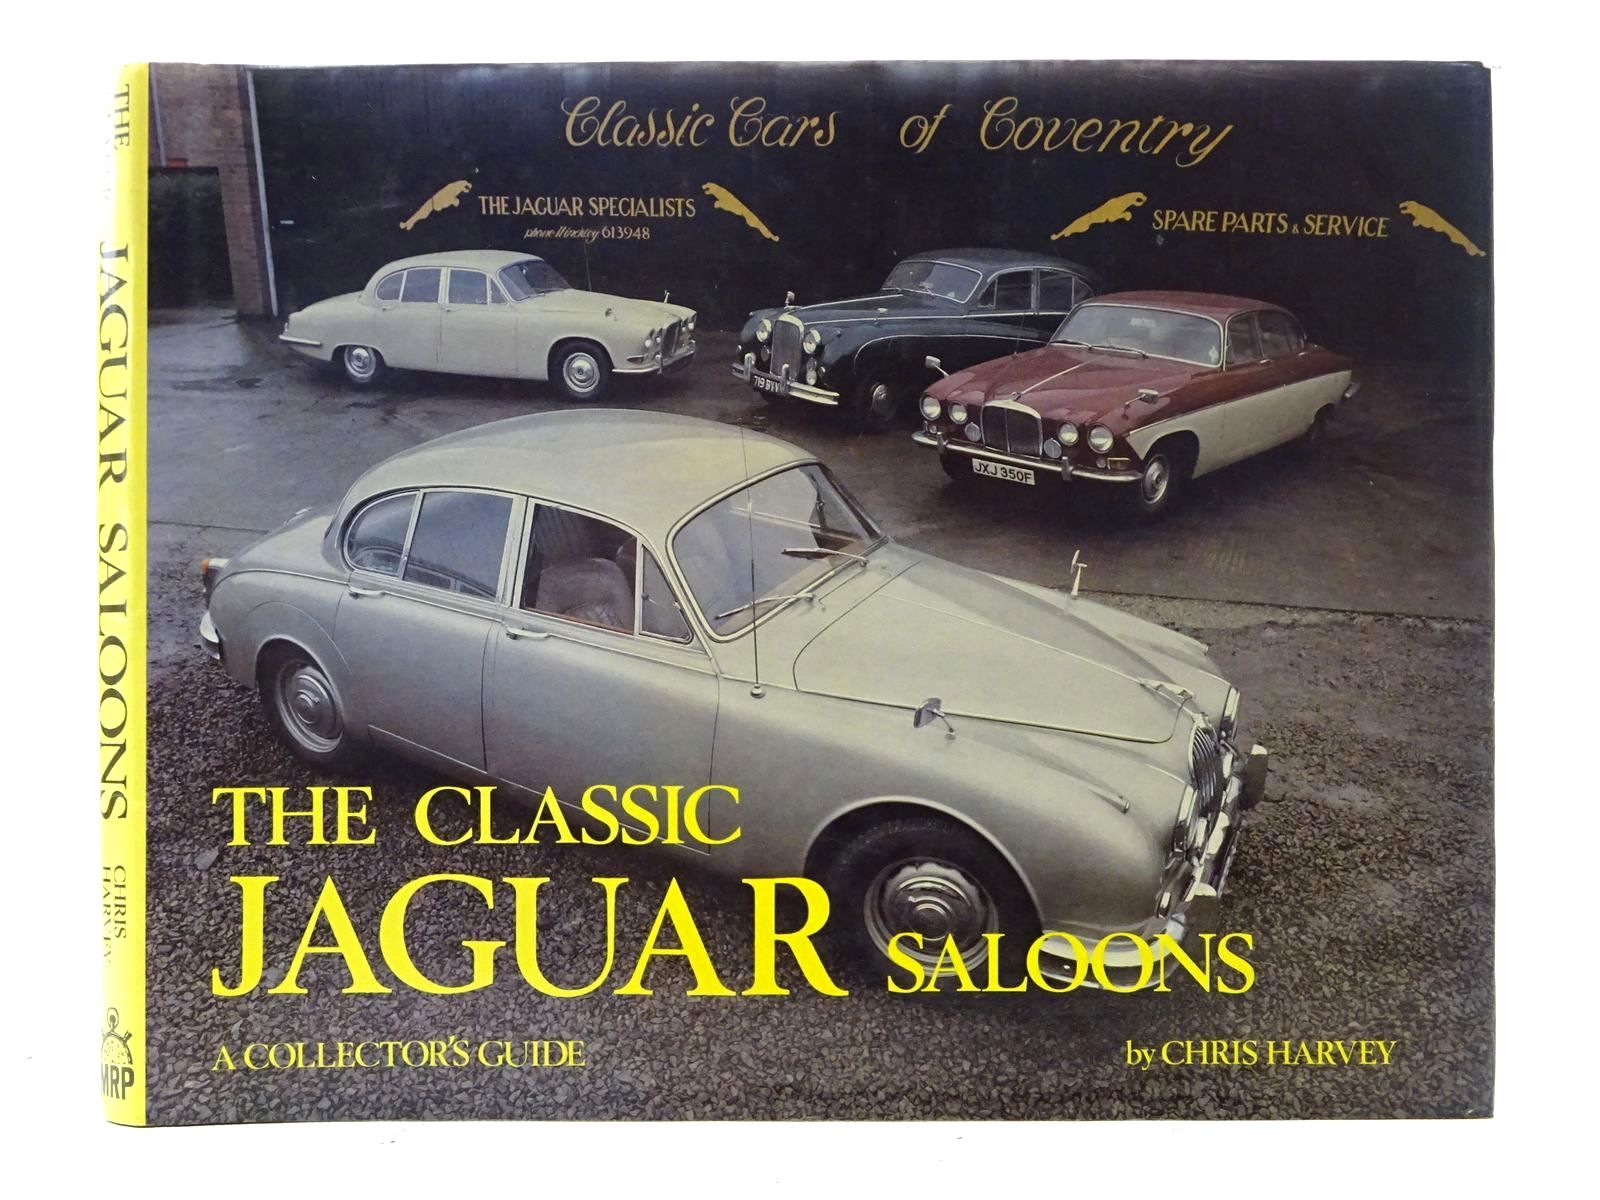 Photo of THE CLASSIC JAGUAR SALOONS written by Harvey, Chris published by Motor Racing Publications Ltd. (STOCK CODE: 1610556)  for sale by Stella & Rose's Books